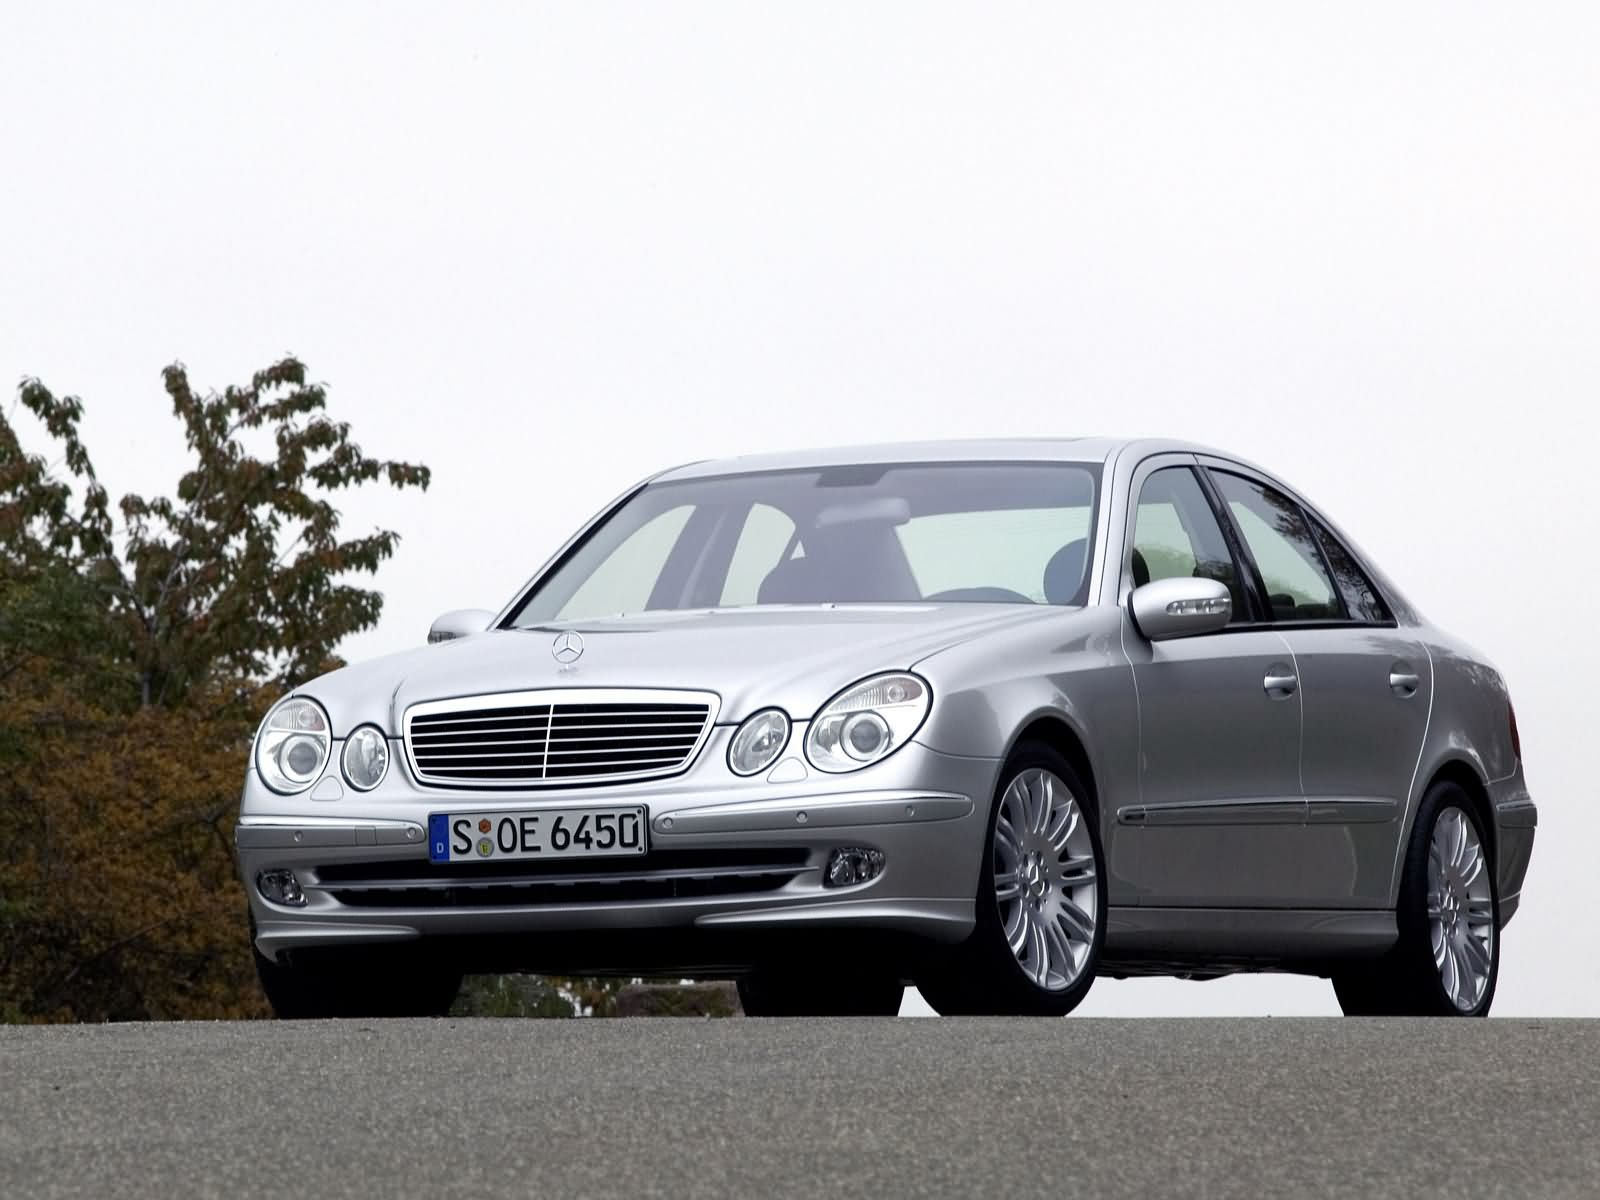 Mercedes benz e class w211 photos photogallery with 38 for Mercedes benz forum e class